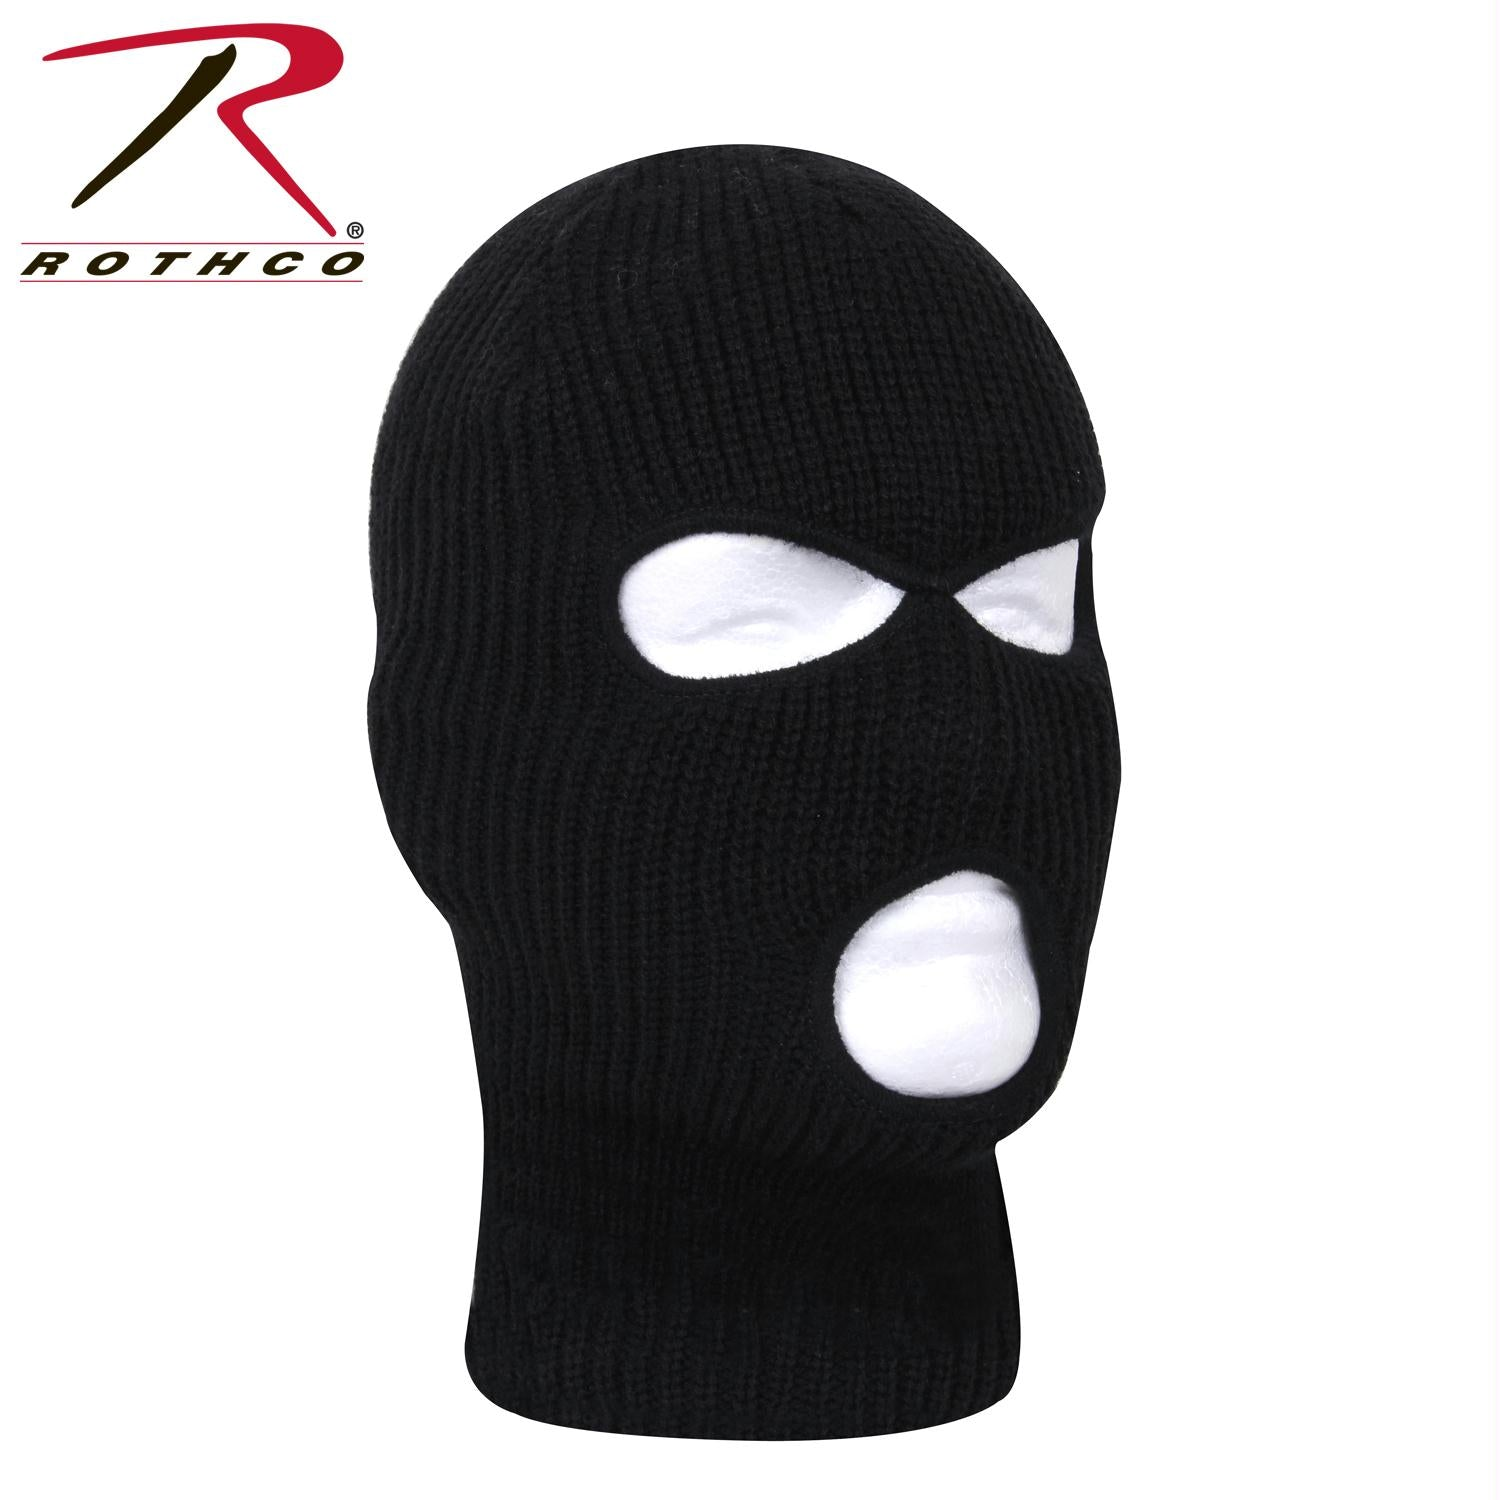 Rothco Fine Knit Three Hole Facemask - Black / One Size